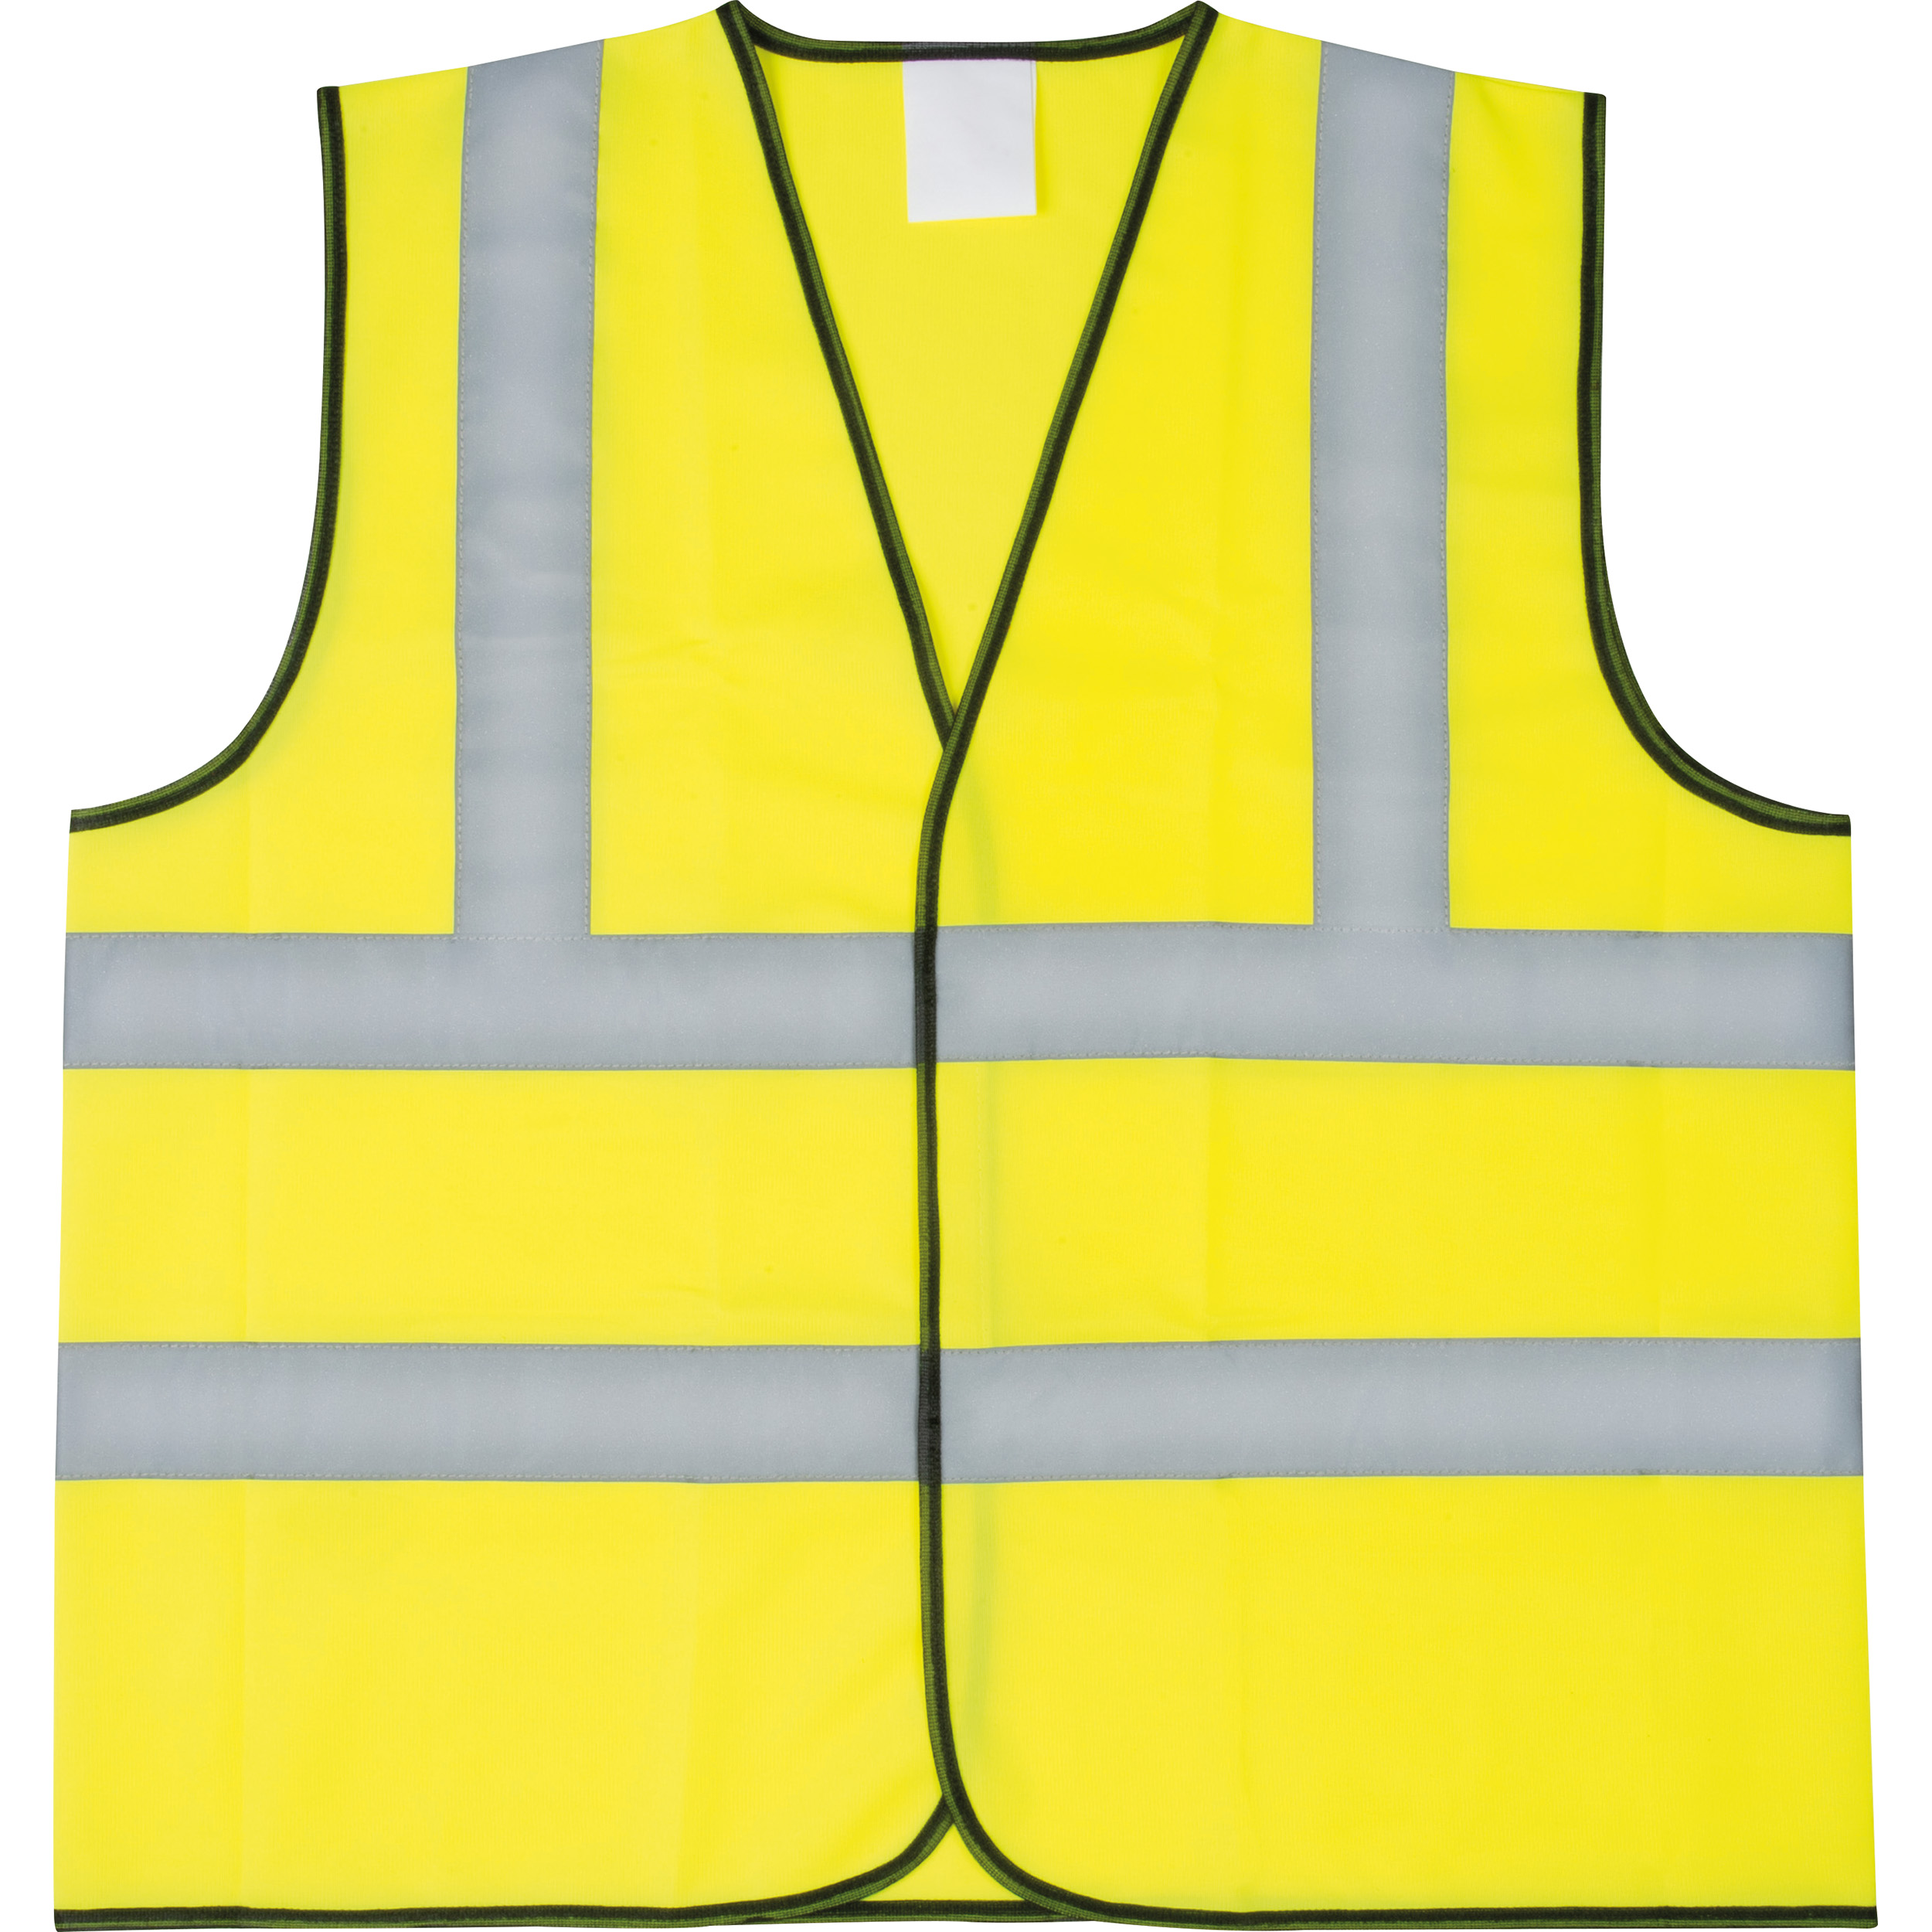 Safety vest for adults